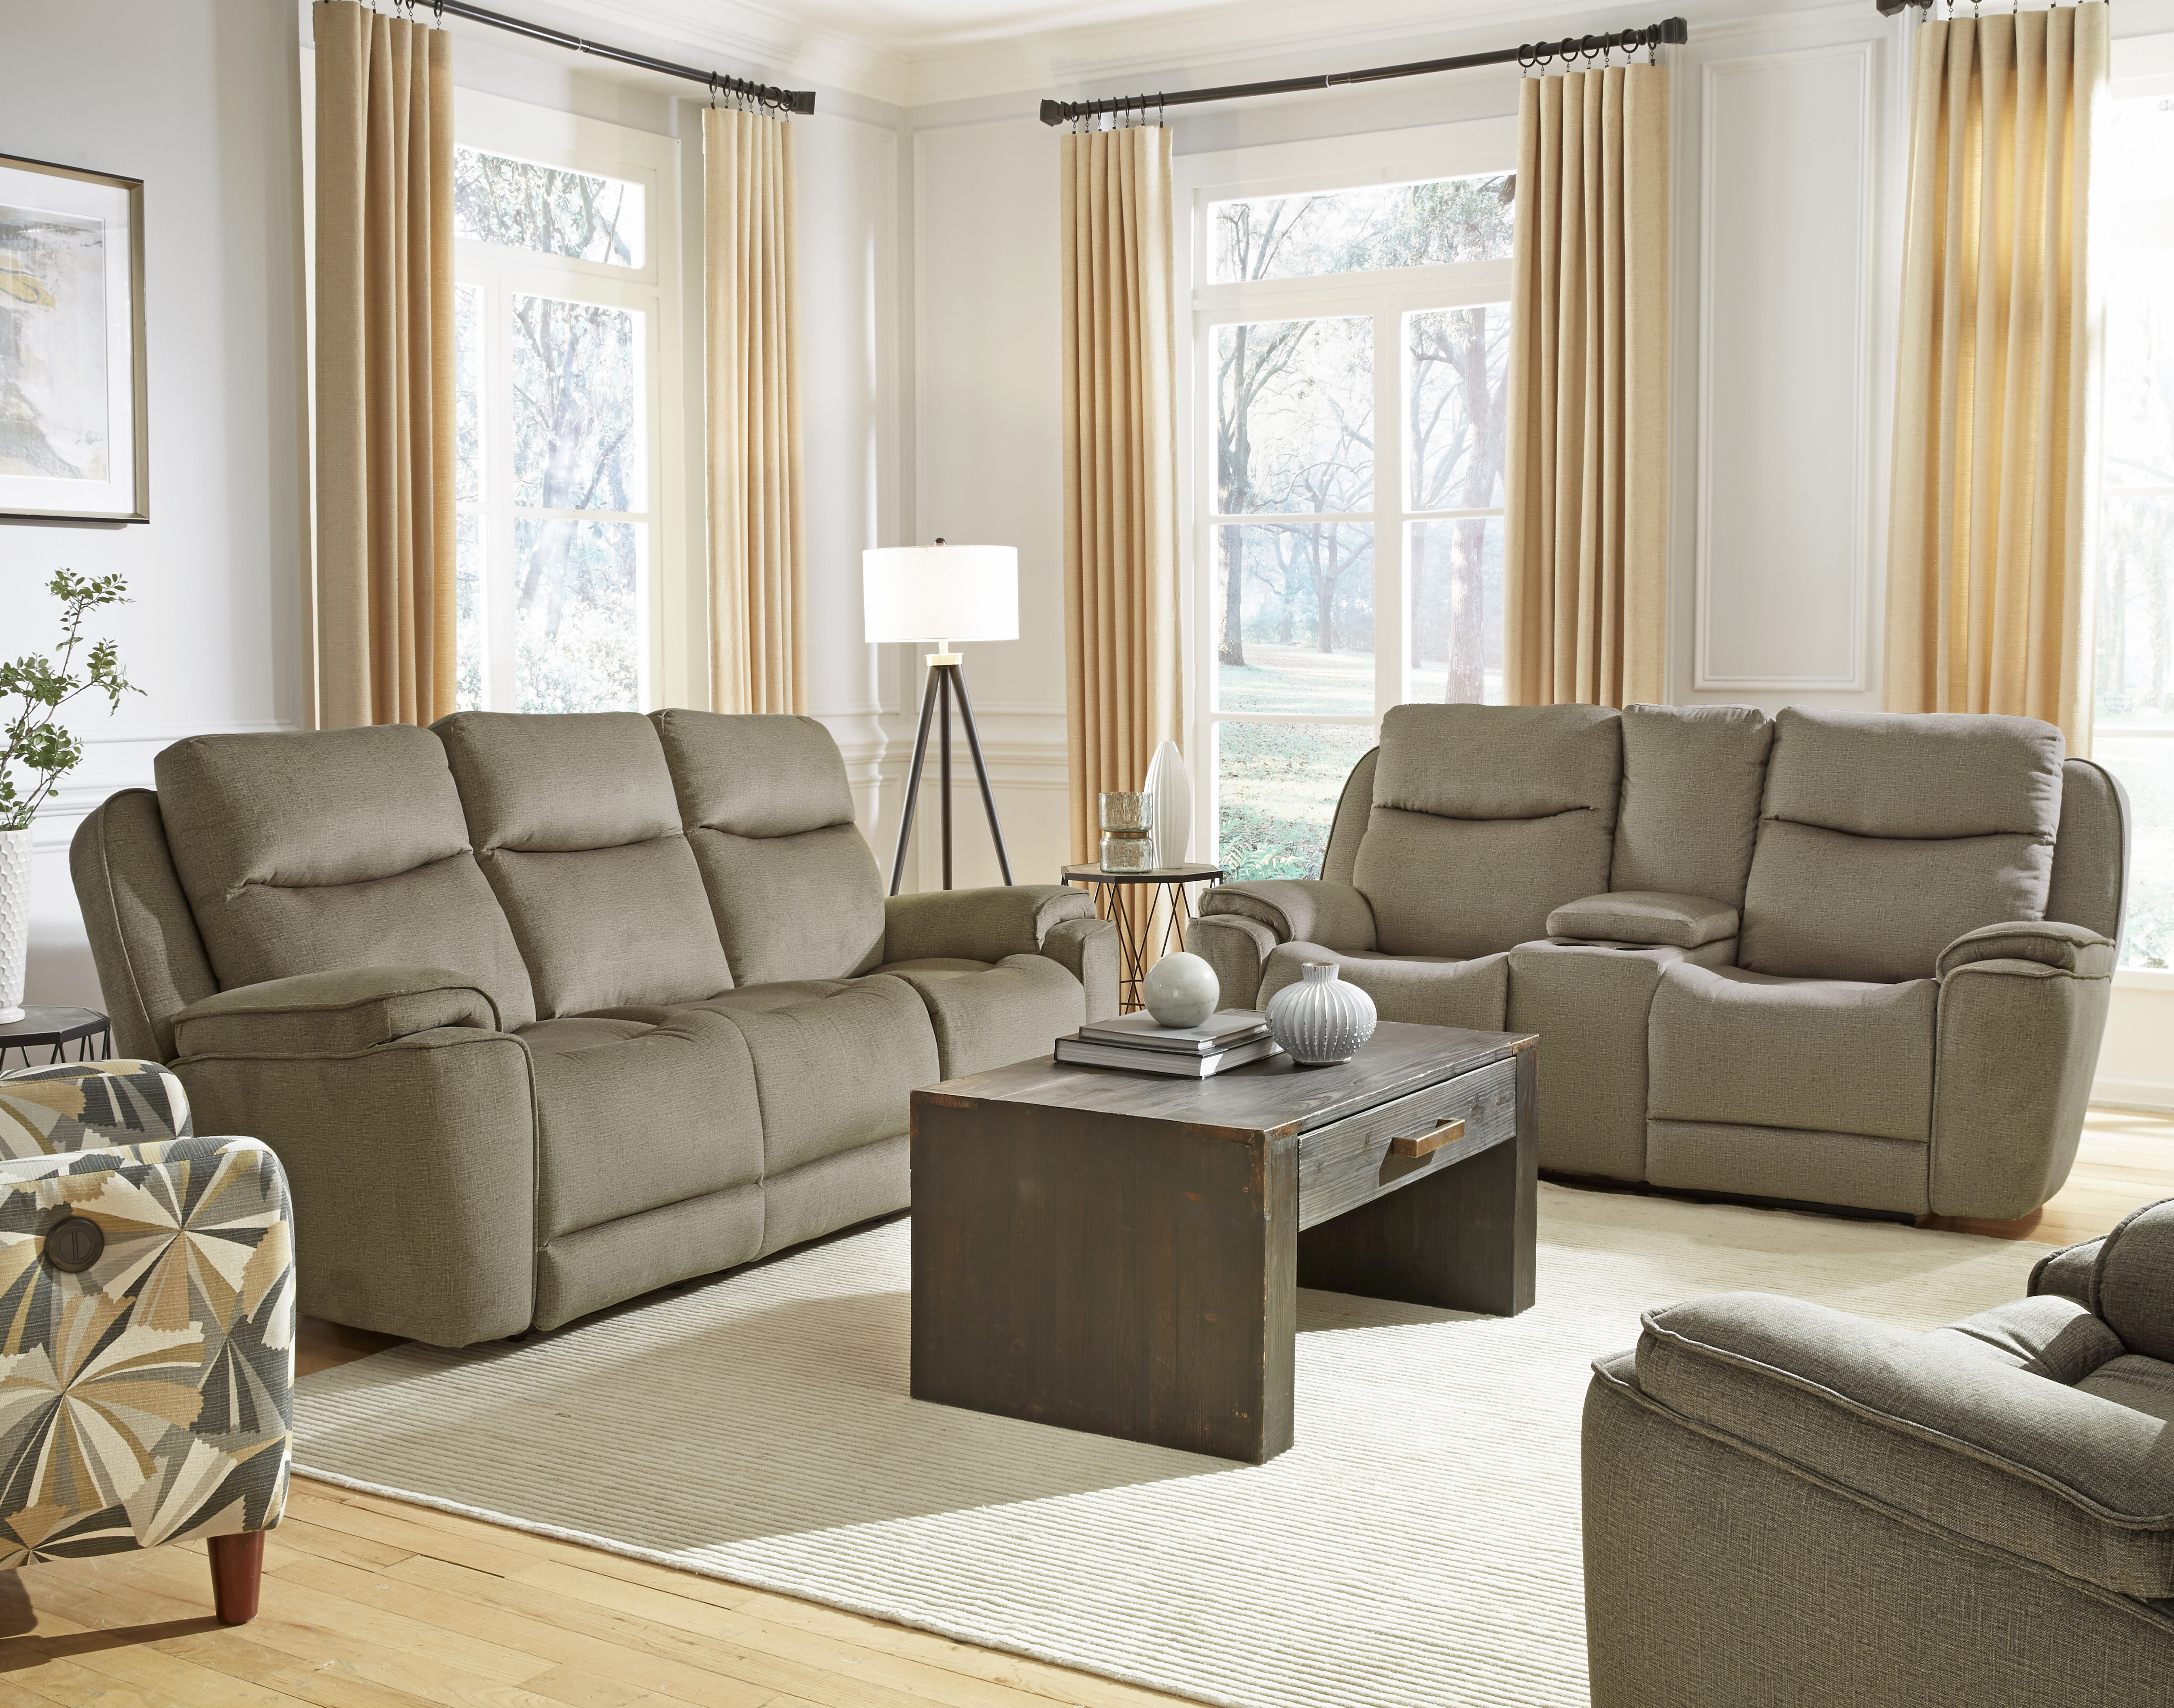 736 Show Stopper Sofa Image